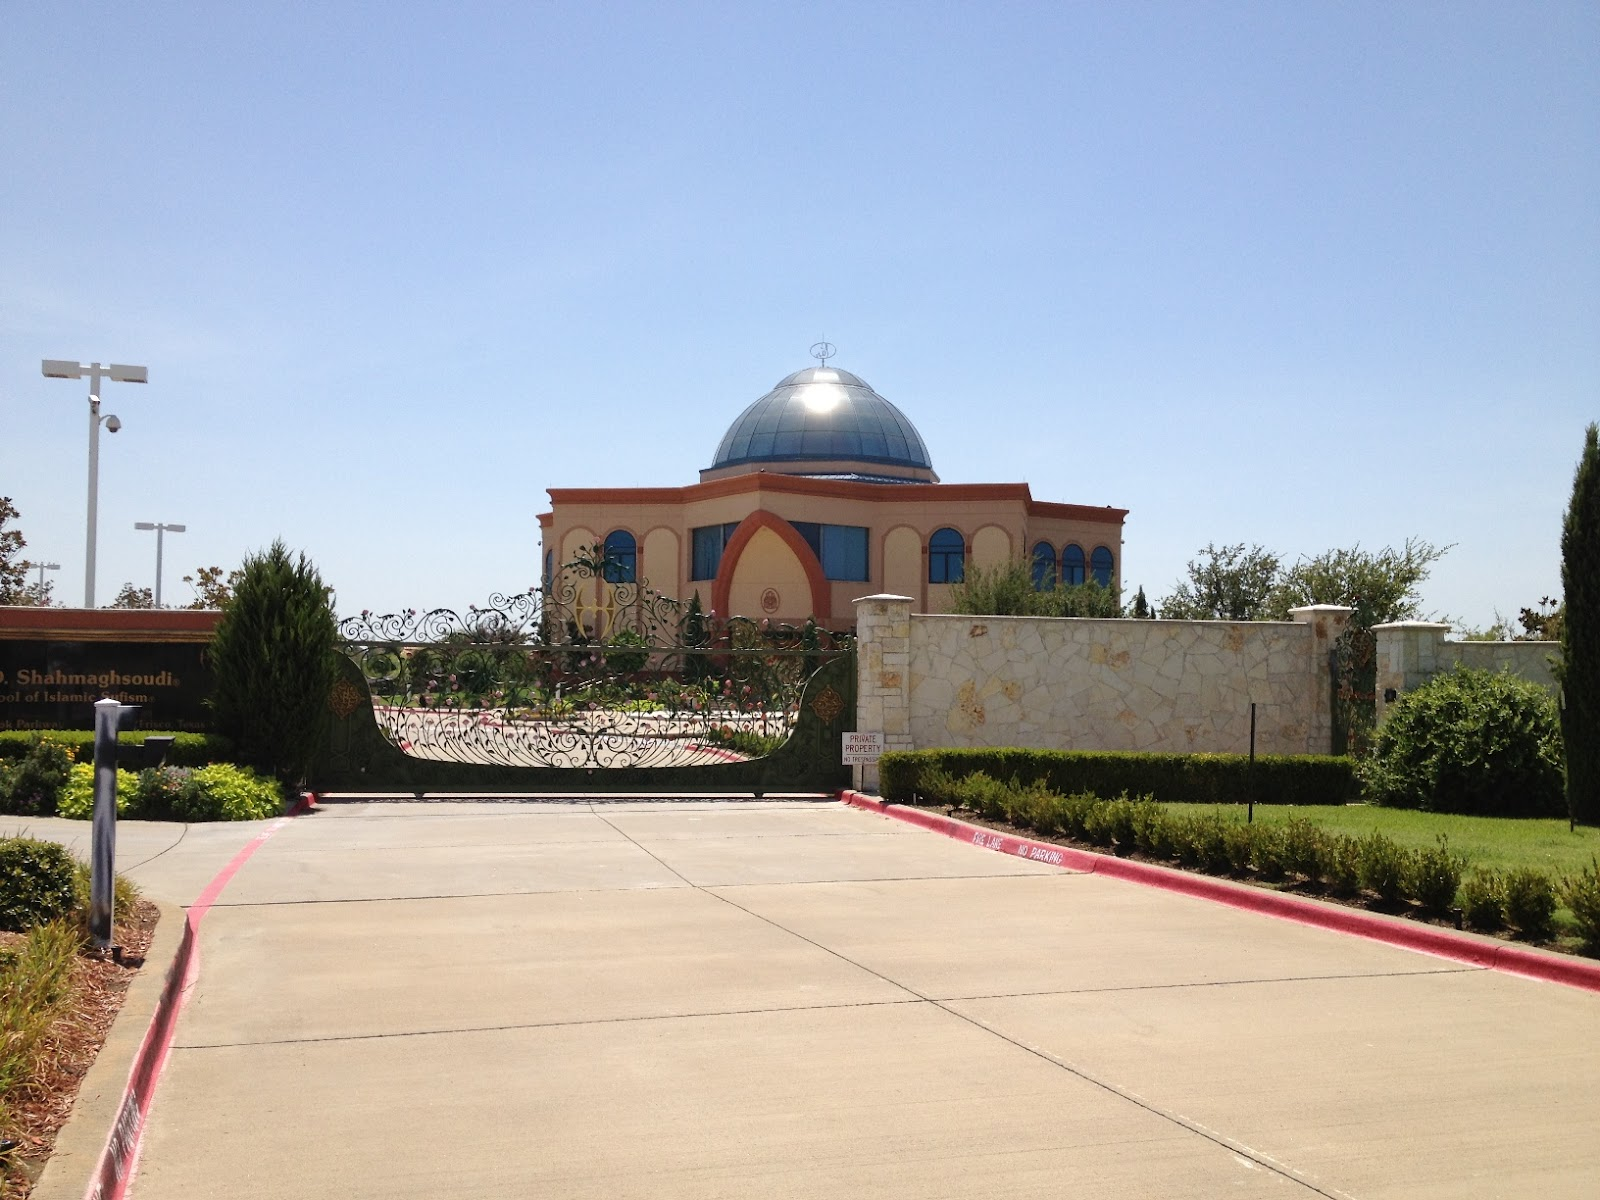 dallas center muslim Looking for suitable urdu never married muslim grooms in dallas center muslim matrimonial nikahcom, the most trusted muslim matrimony website has suitable muslim matches for every single muslim.